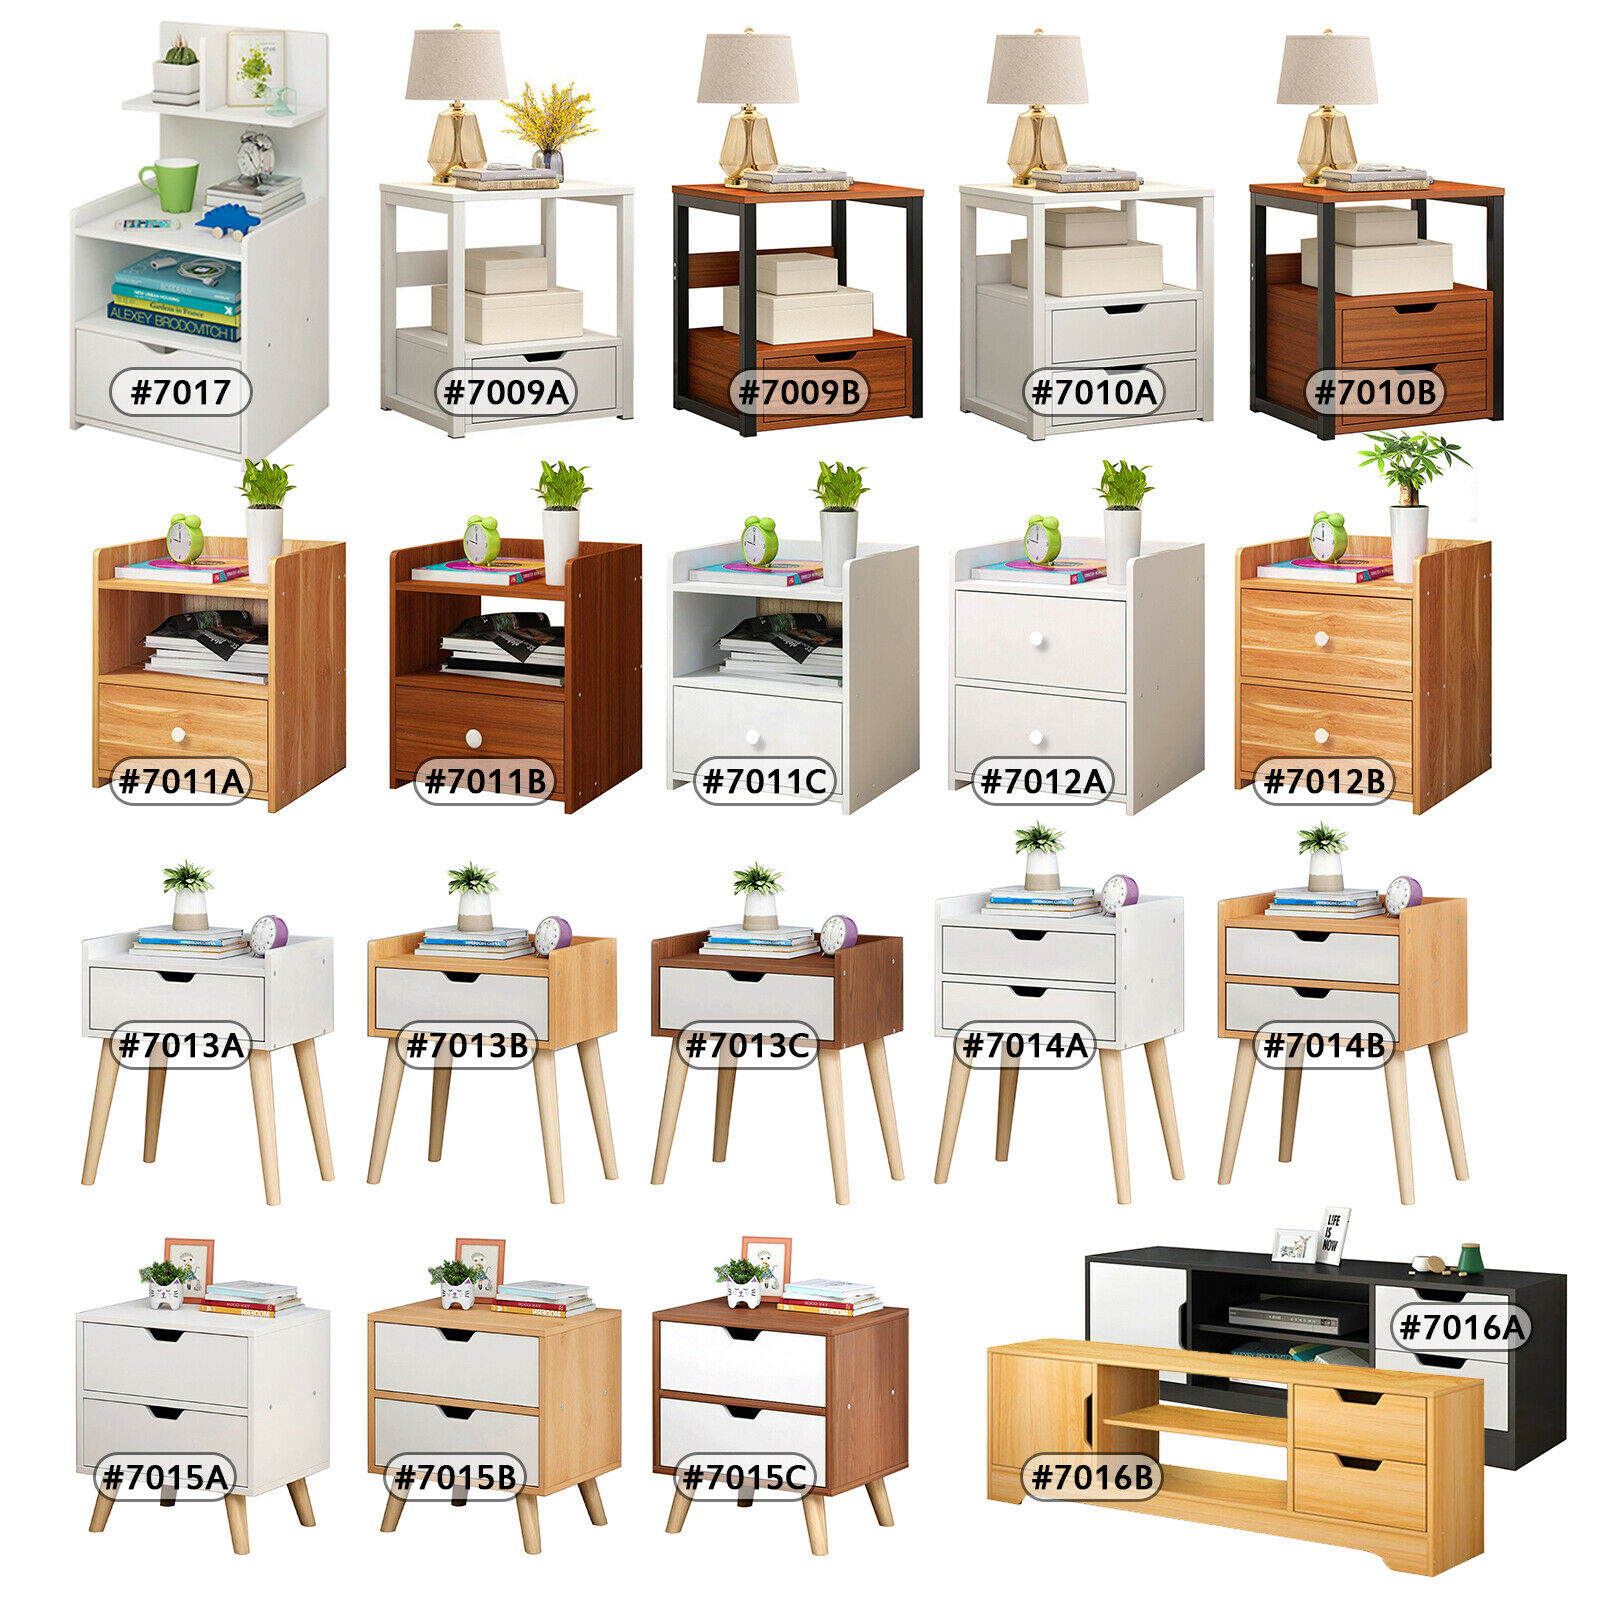 US 1/2 Drawers Simple Bedroom Storage Cabinet with Drawer Modern Wooden Nightstand Easy Assembly Bedside Table Handle Desk